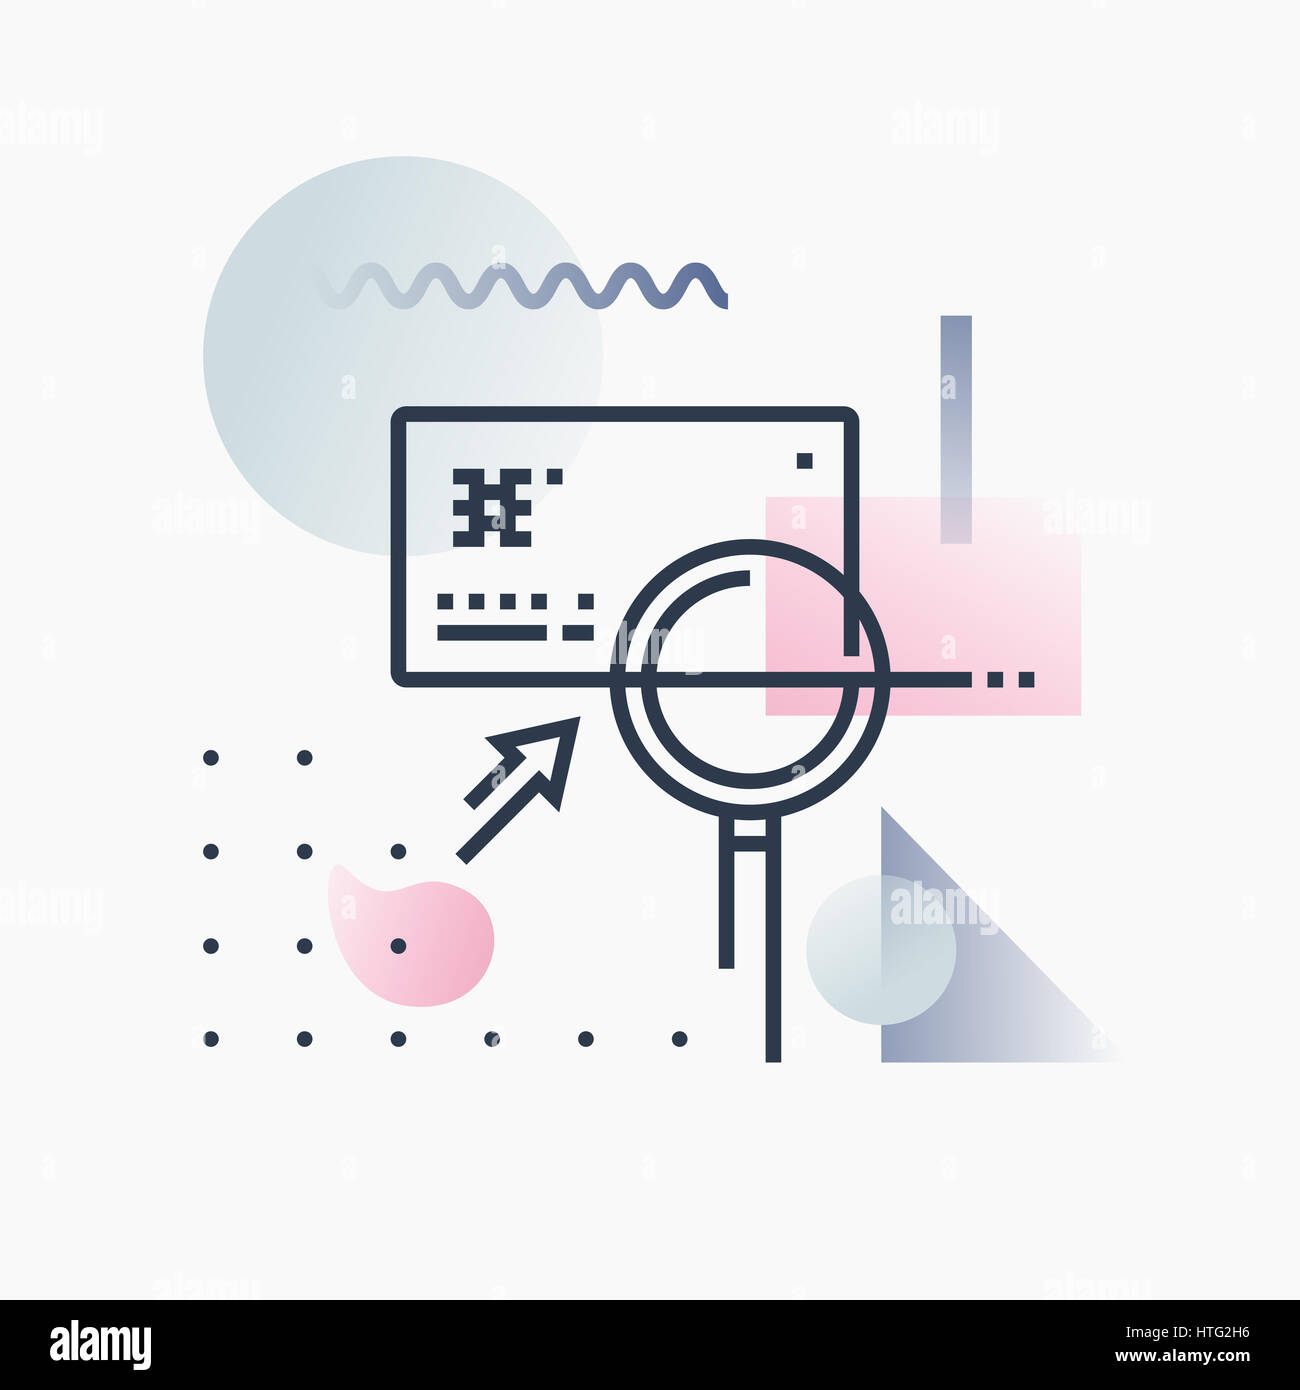 Credit card fraud detection, banking card analysis. Abstract illustration concept. - Stock Image